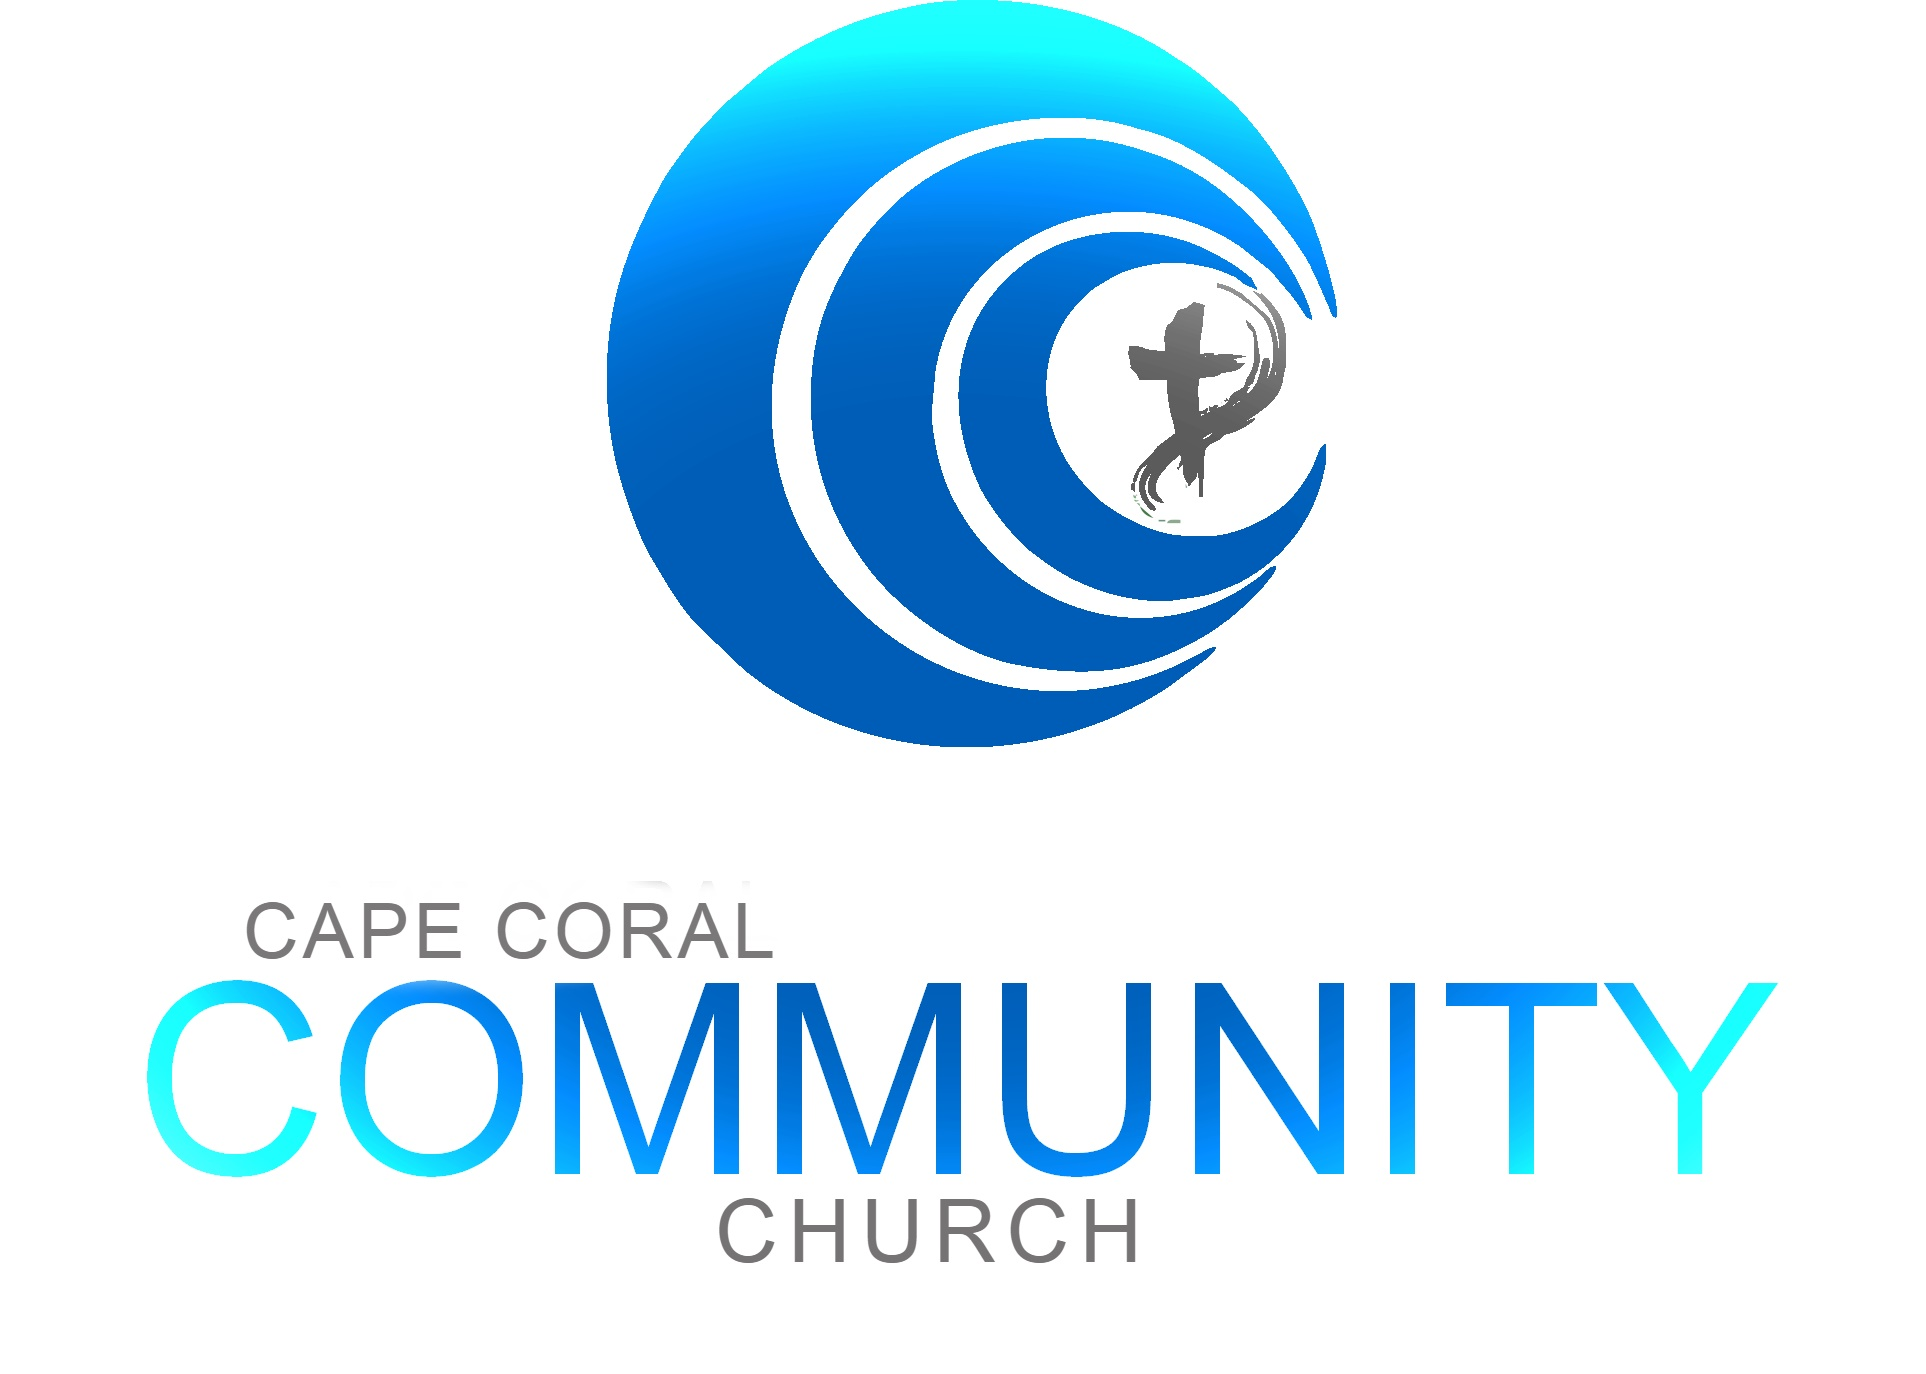 Cape Coral Community Church